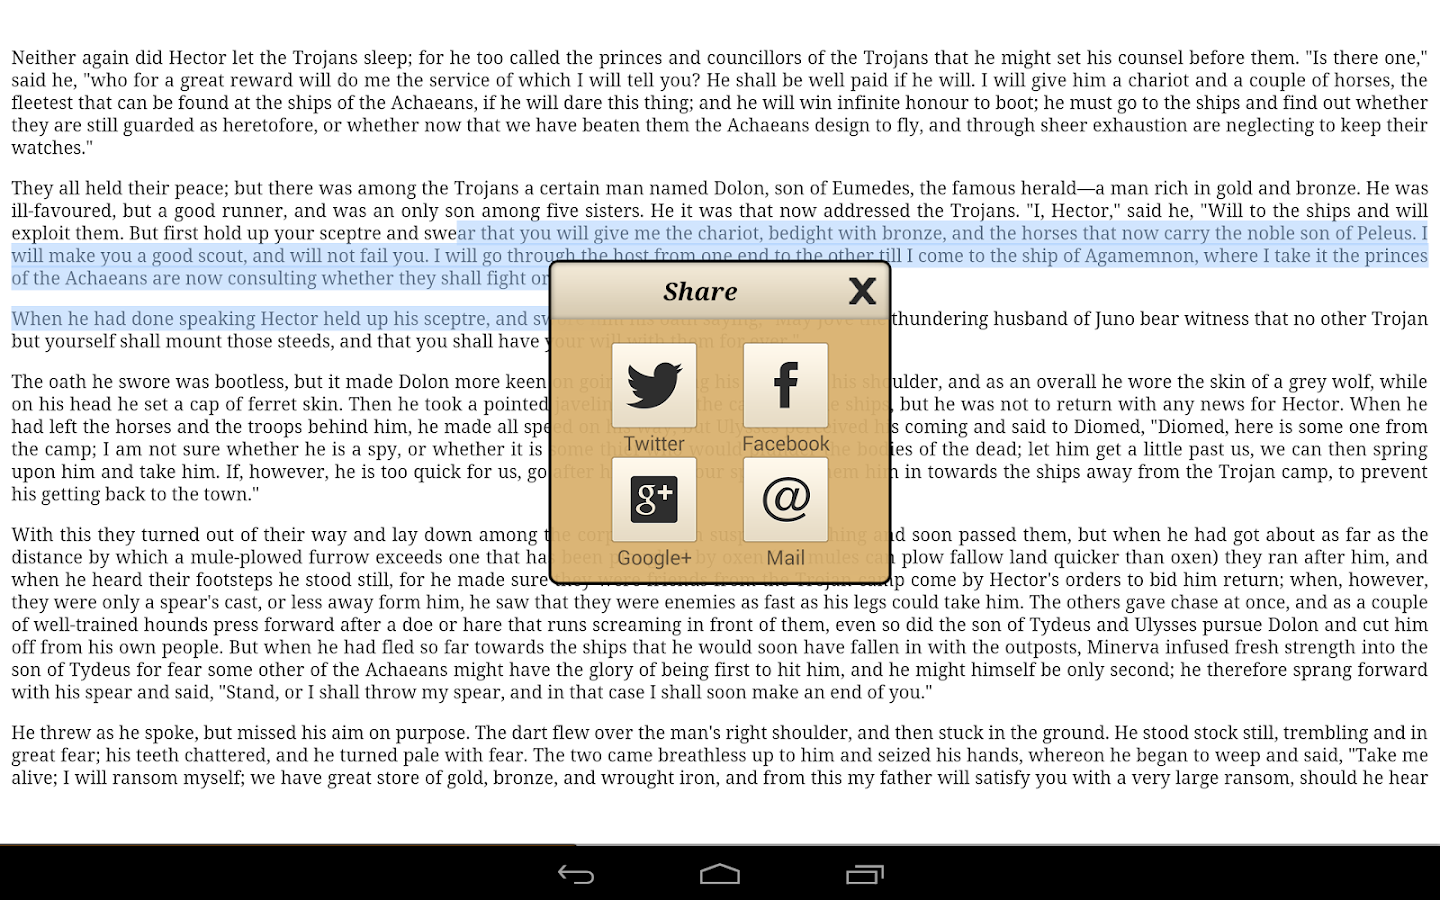 Ebook Reader Screenshot 9